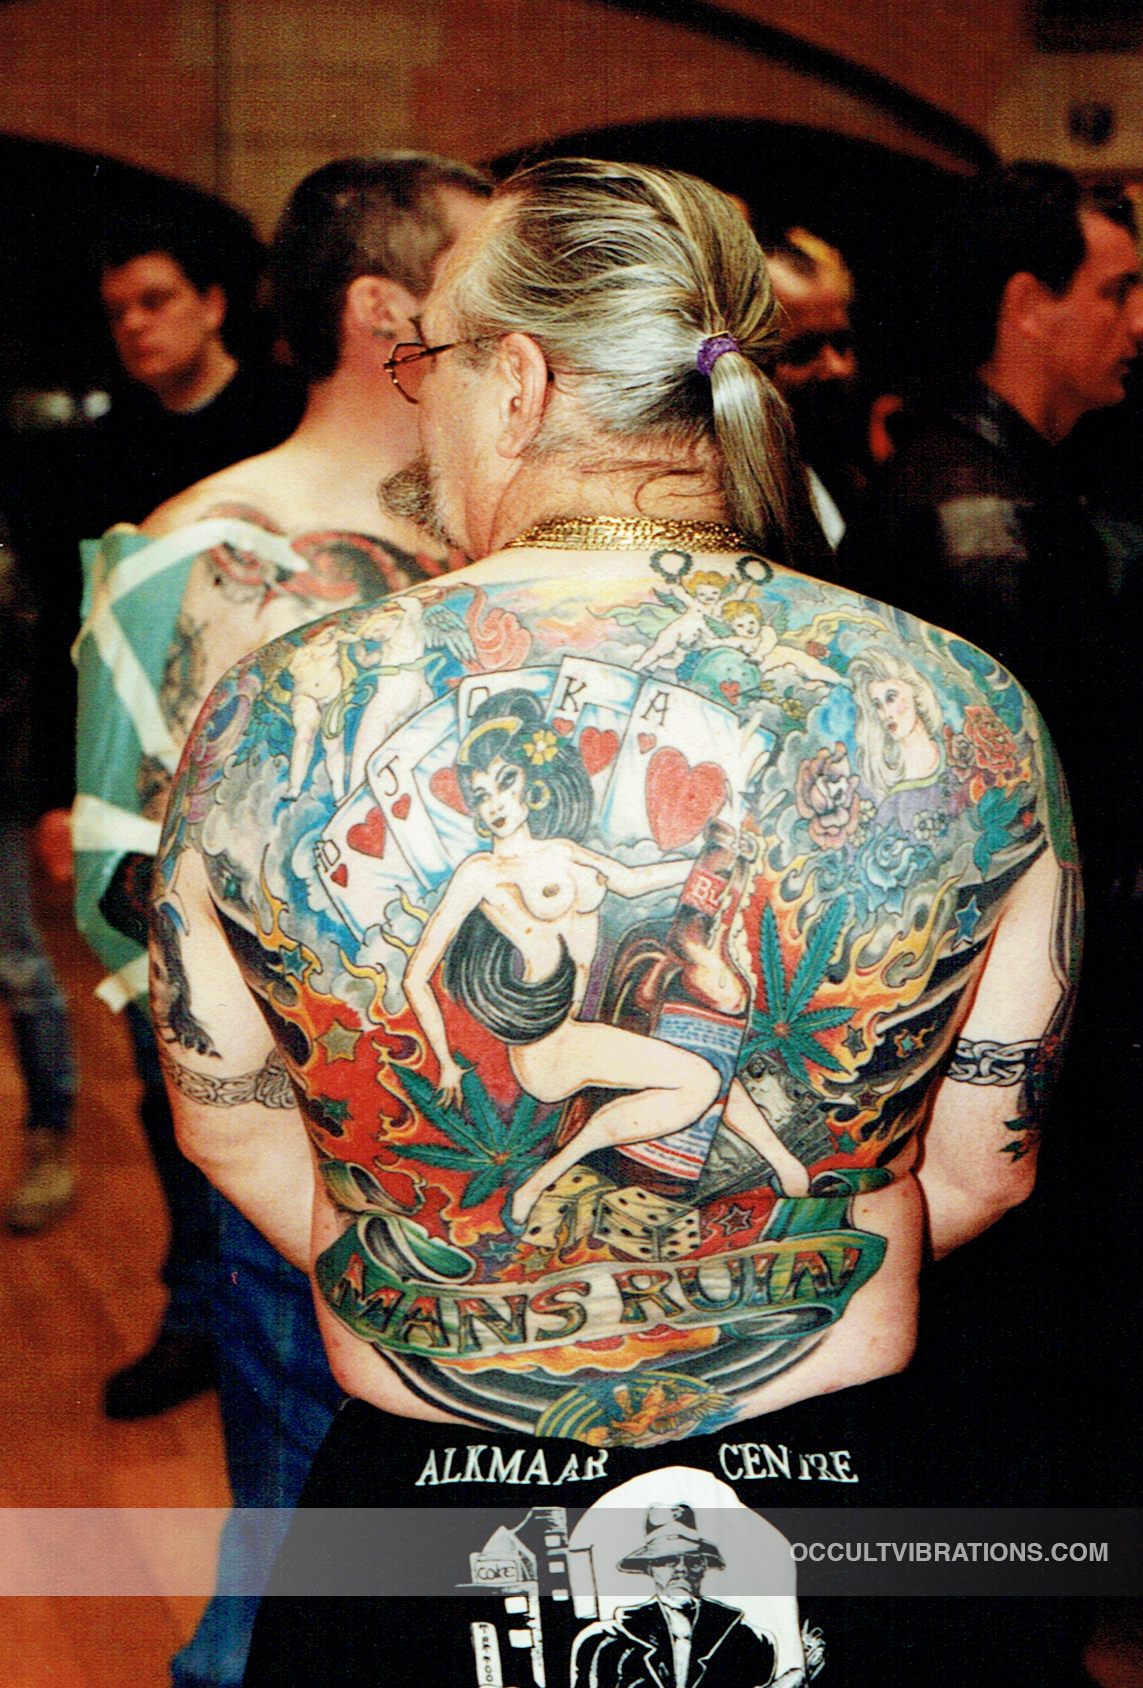 Amsterdam Tattoo Convention 1995 Occult Vibrations Ideas And Designs